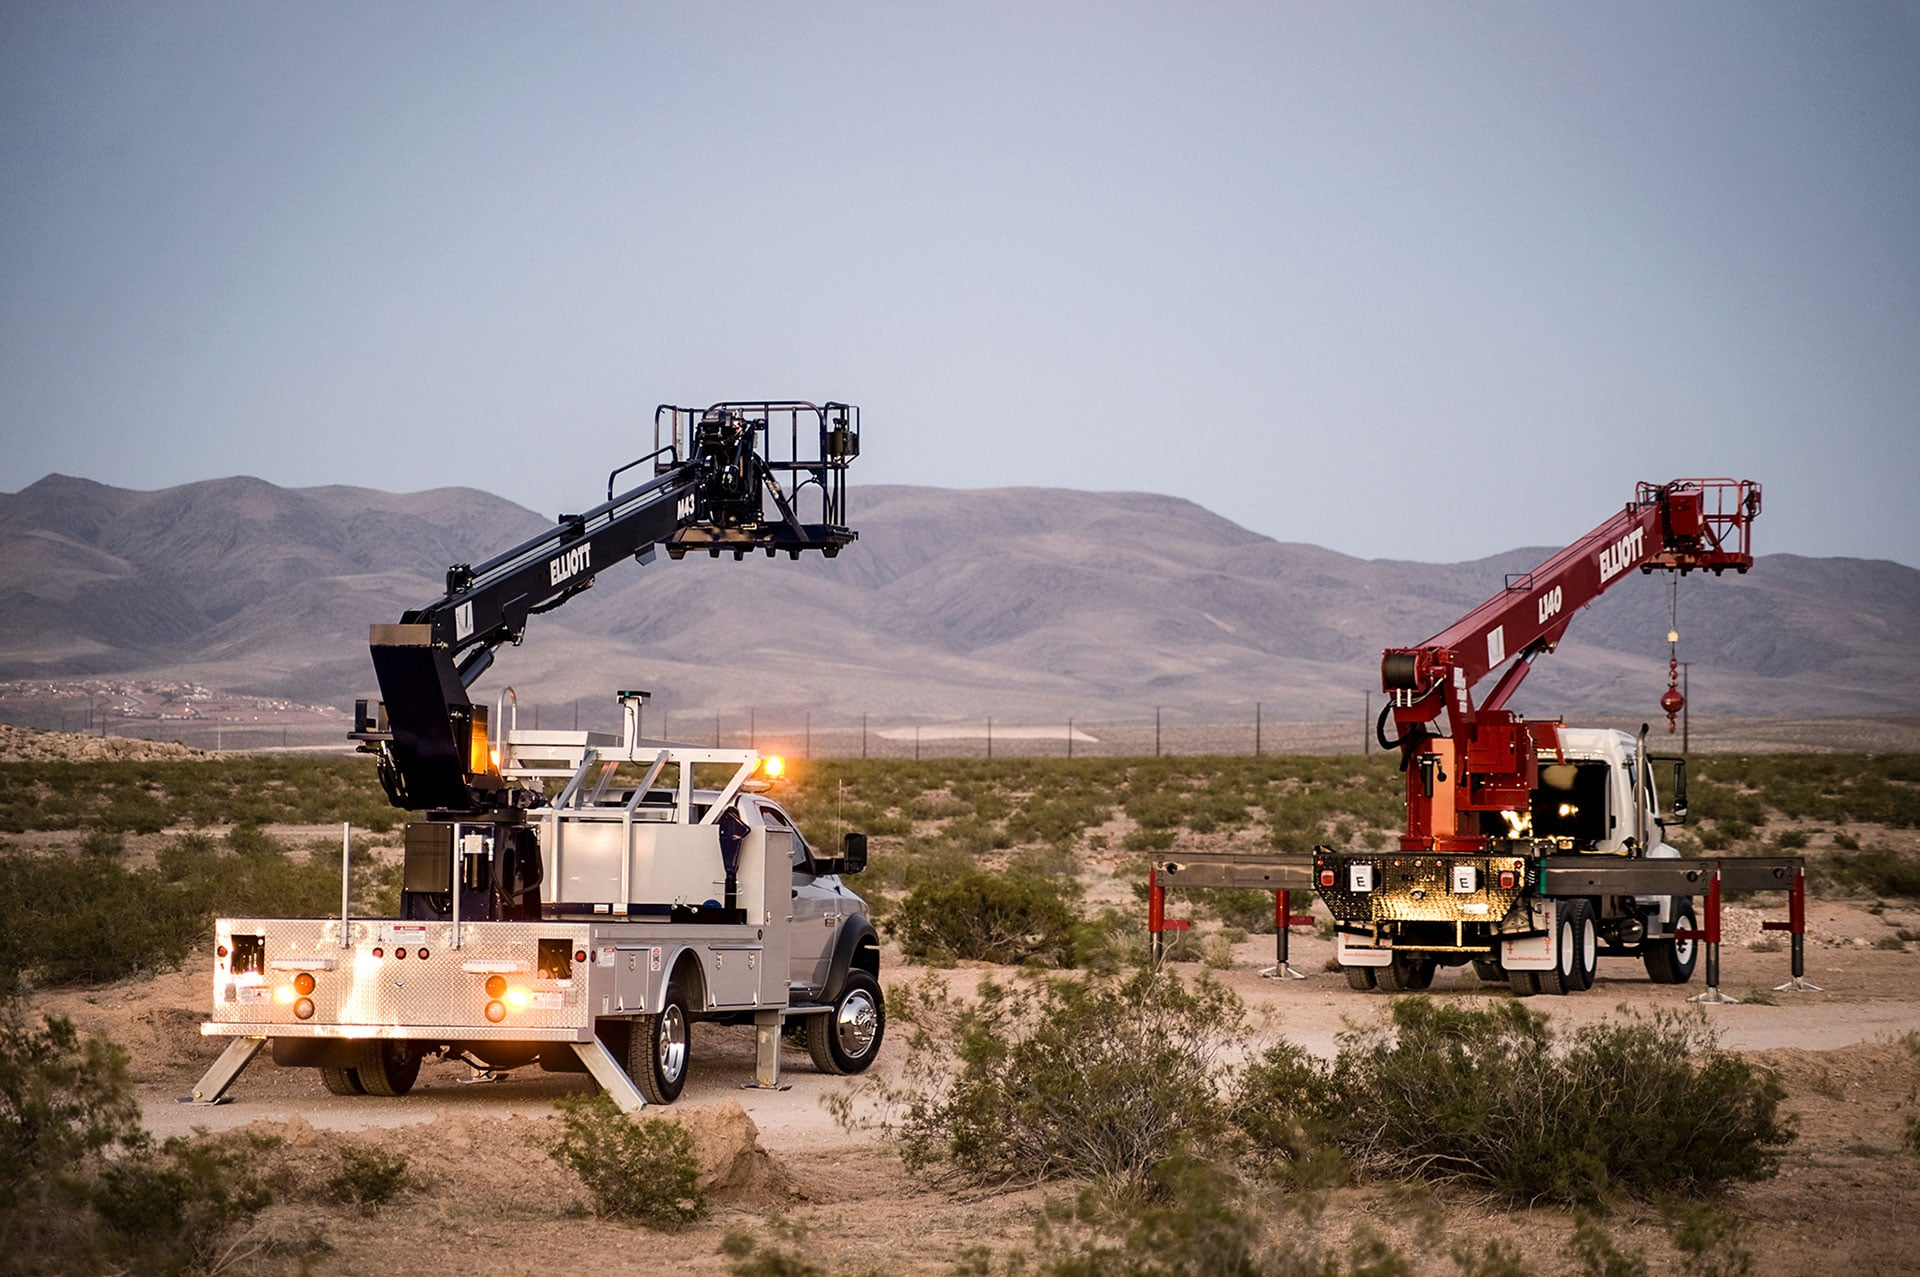 HiReach trucks in desert